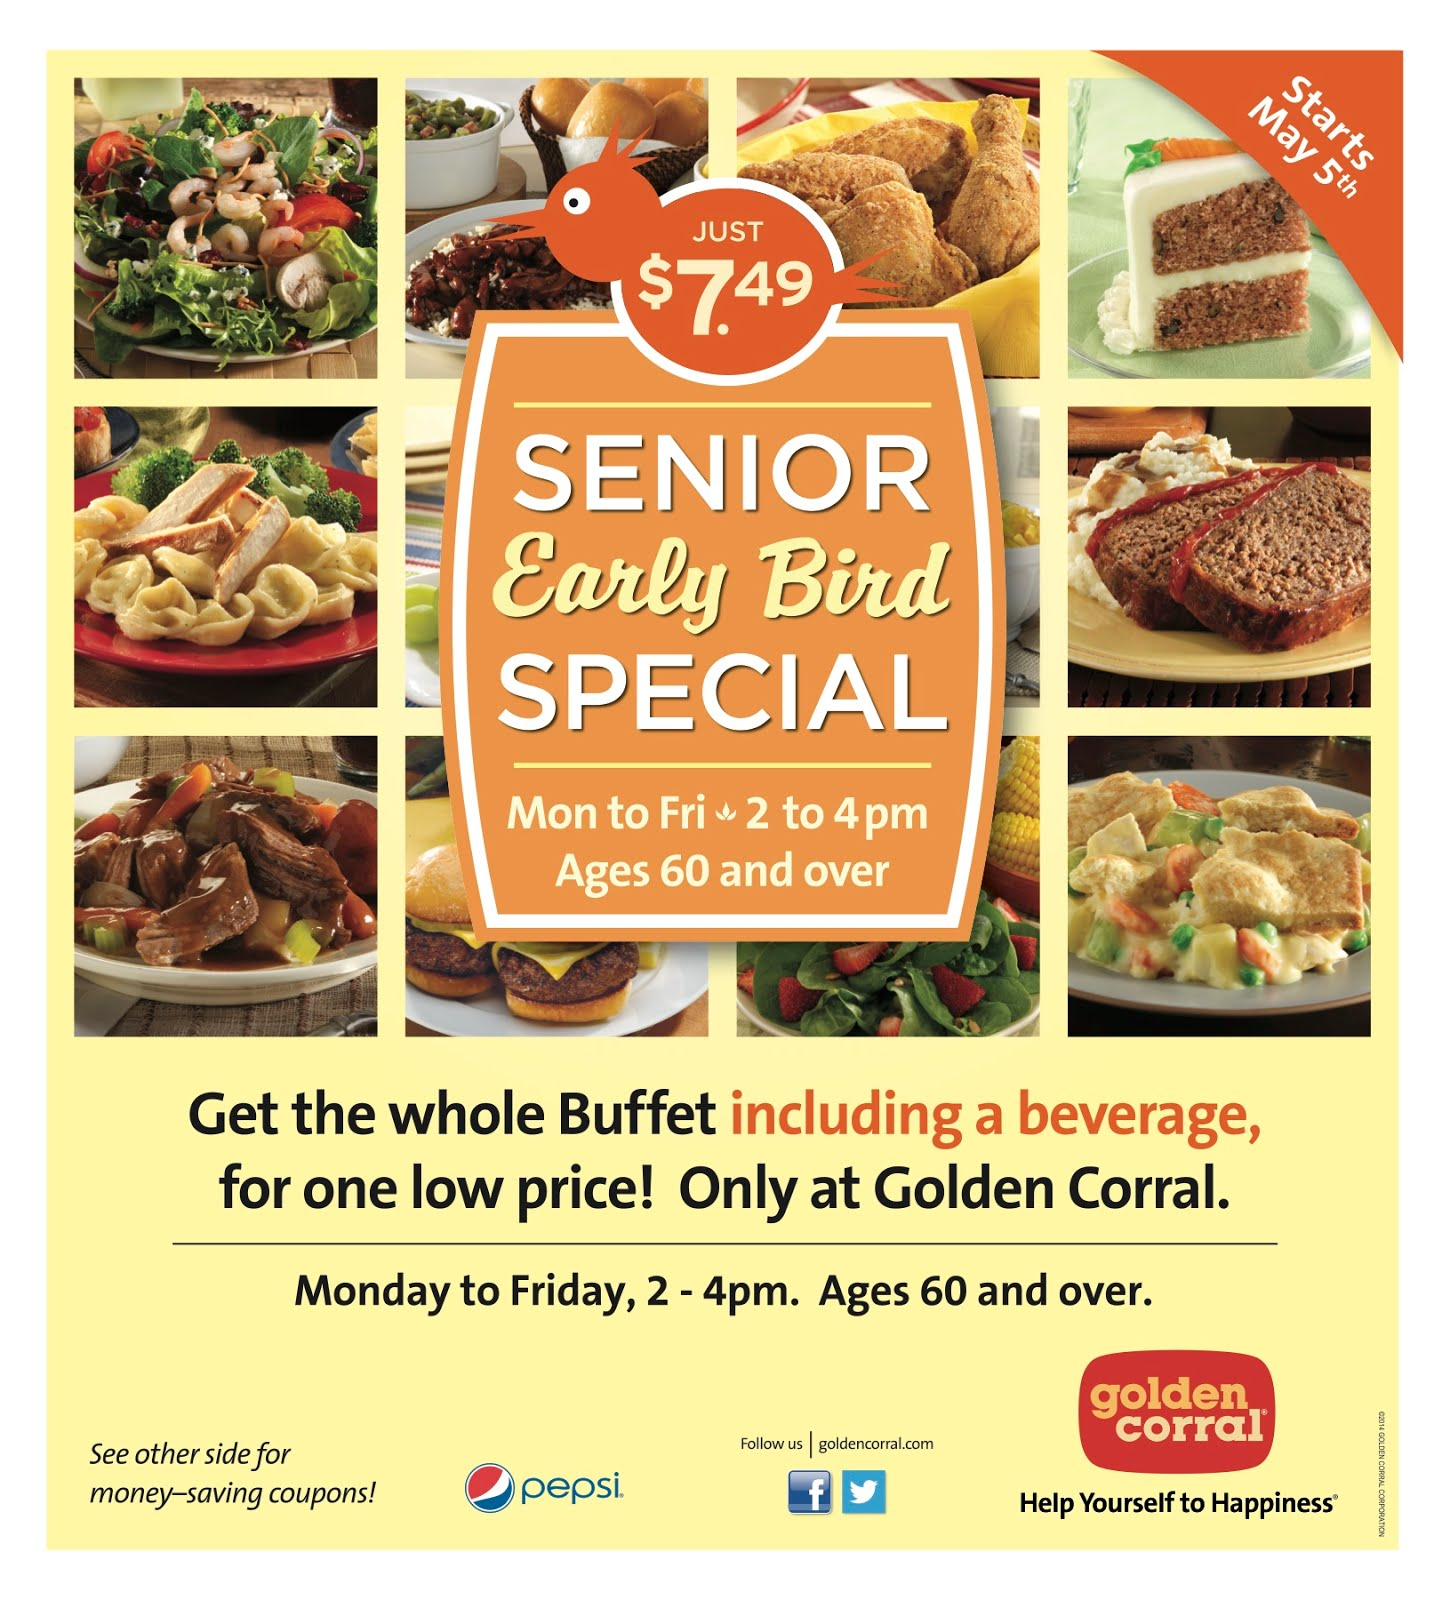 image regarding Golden Corral Printable Coupons called 1 cafe coupon codes golden corral / Usave motor vehicle condo coupon